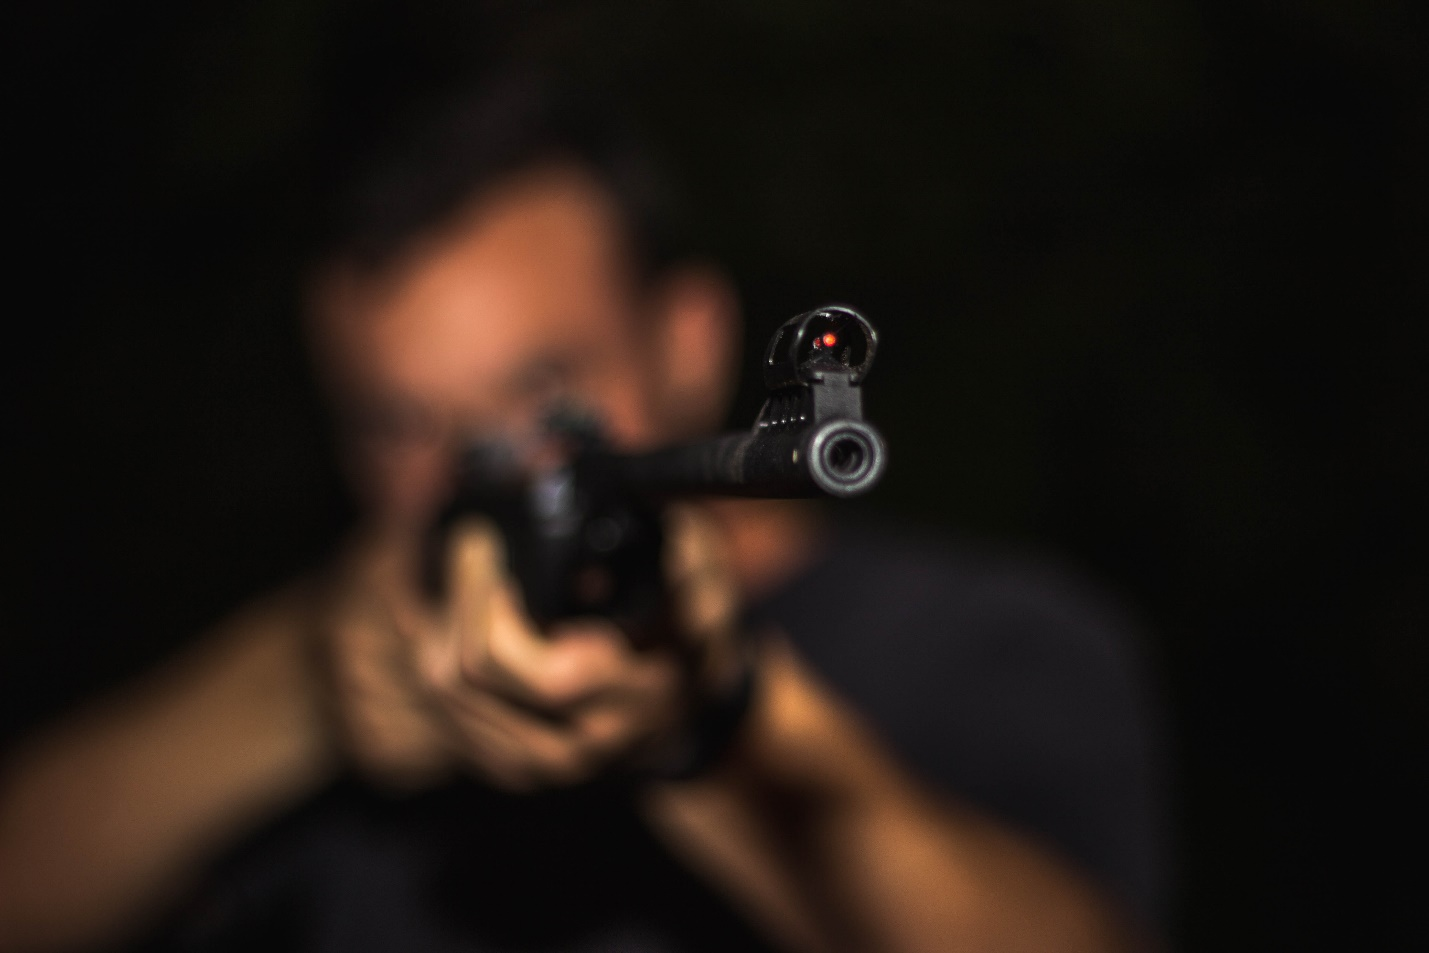 An out of focus image of a man in a black shirt holding a rifle